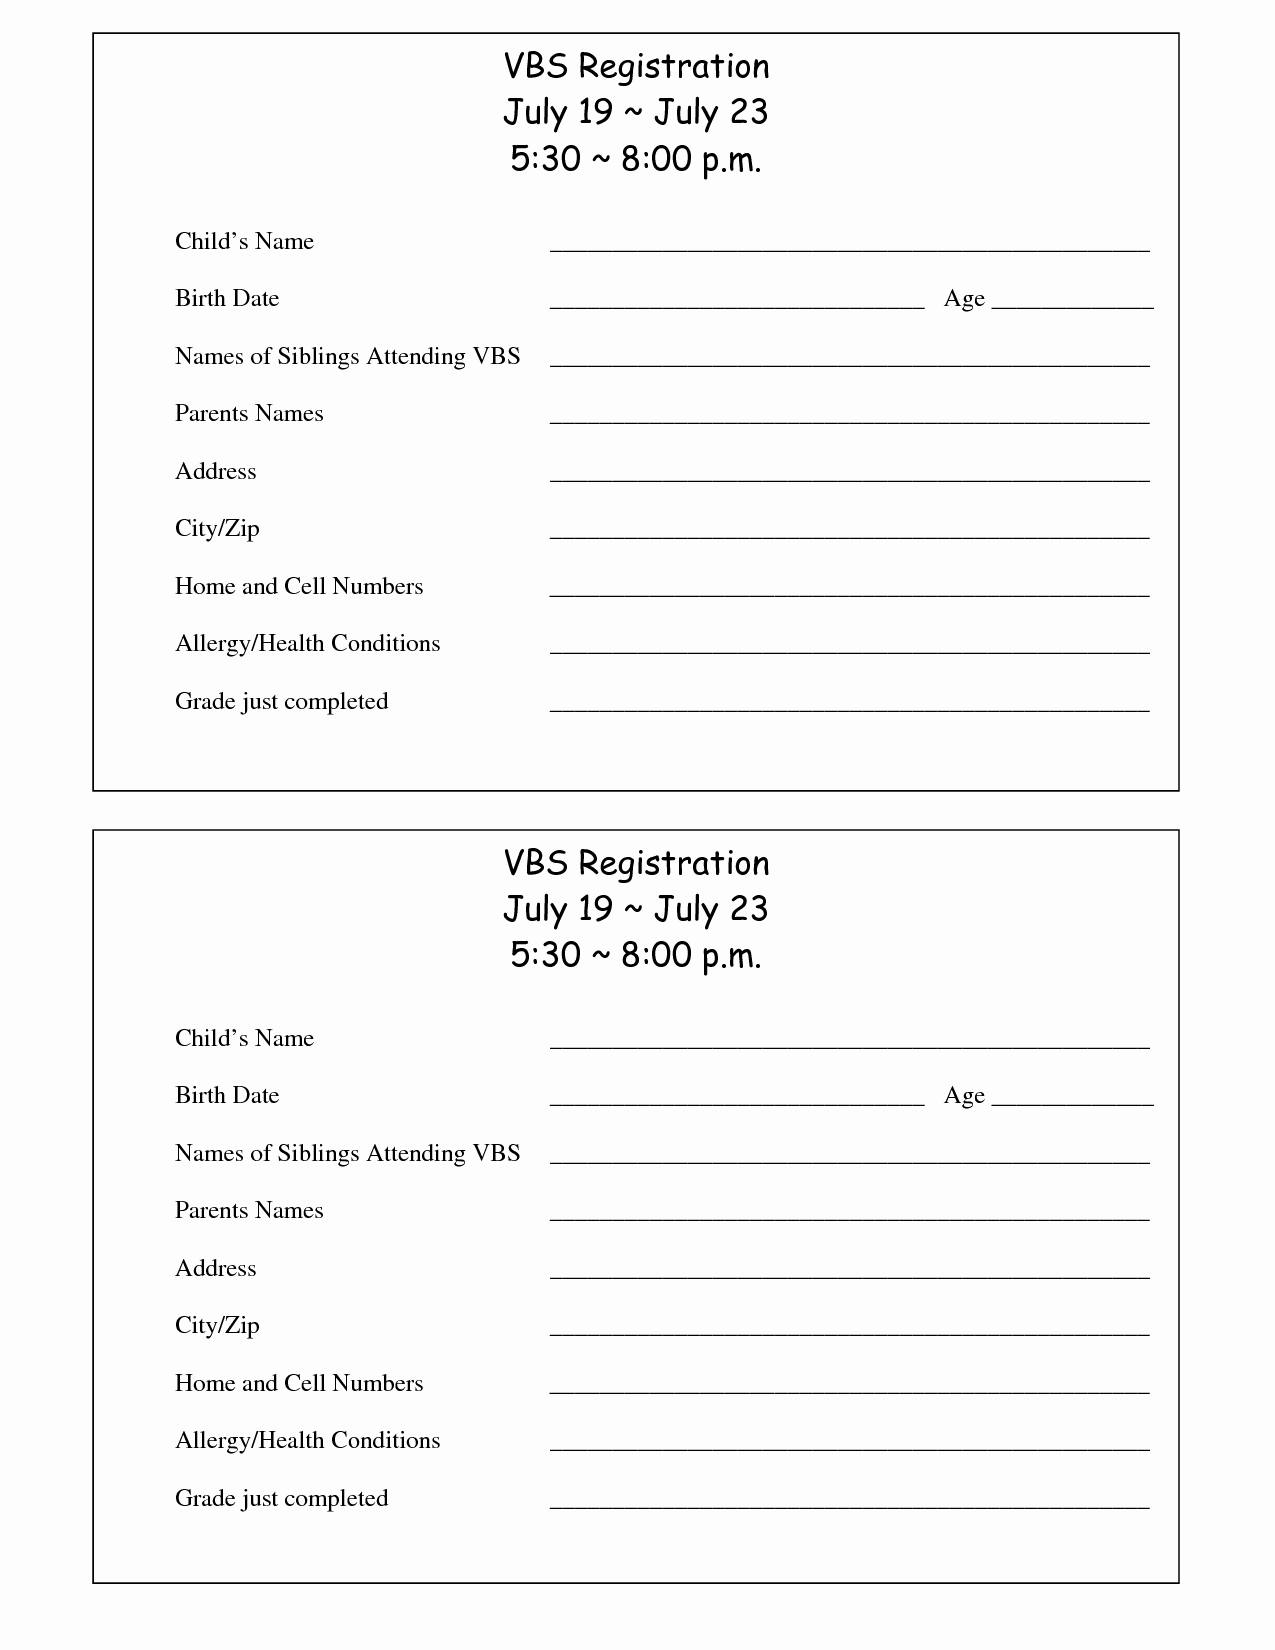 Registration form Template Word Inspirational event Registration form Template Word Bamboodownunder